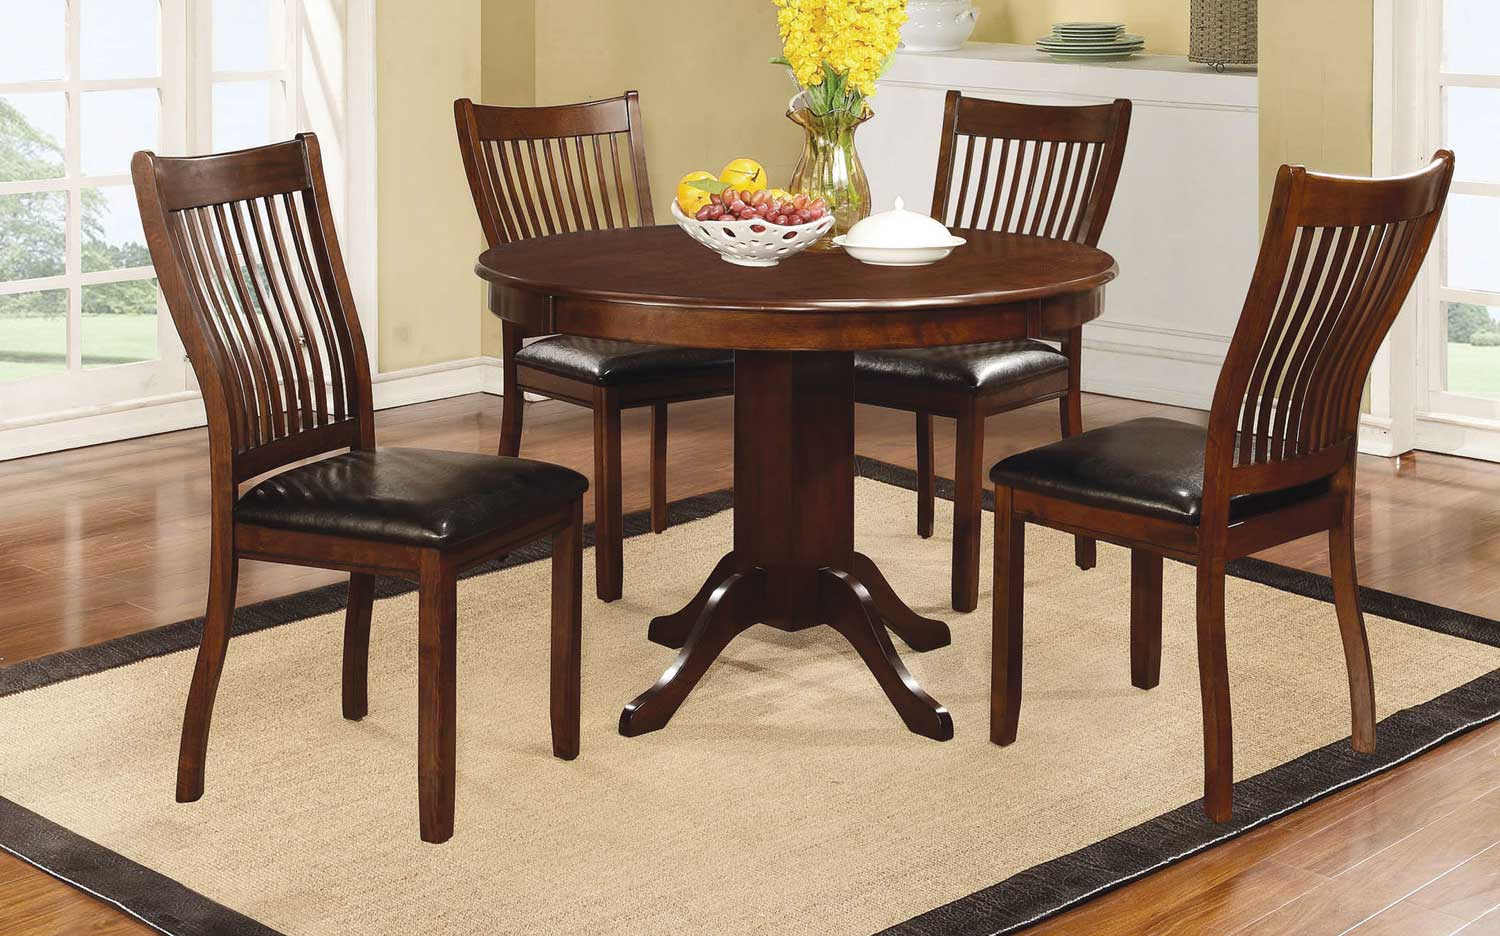 Coaster Sierra Round Dining Collection - Cherry Brown/Black Leatherette